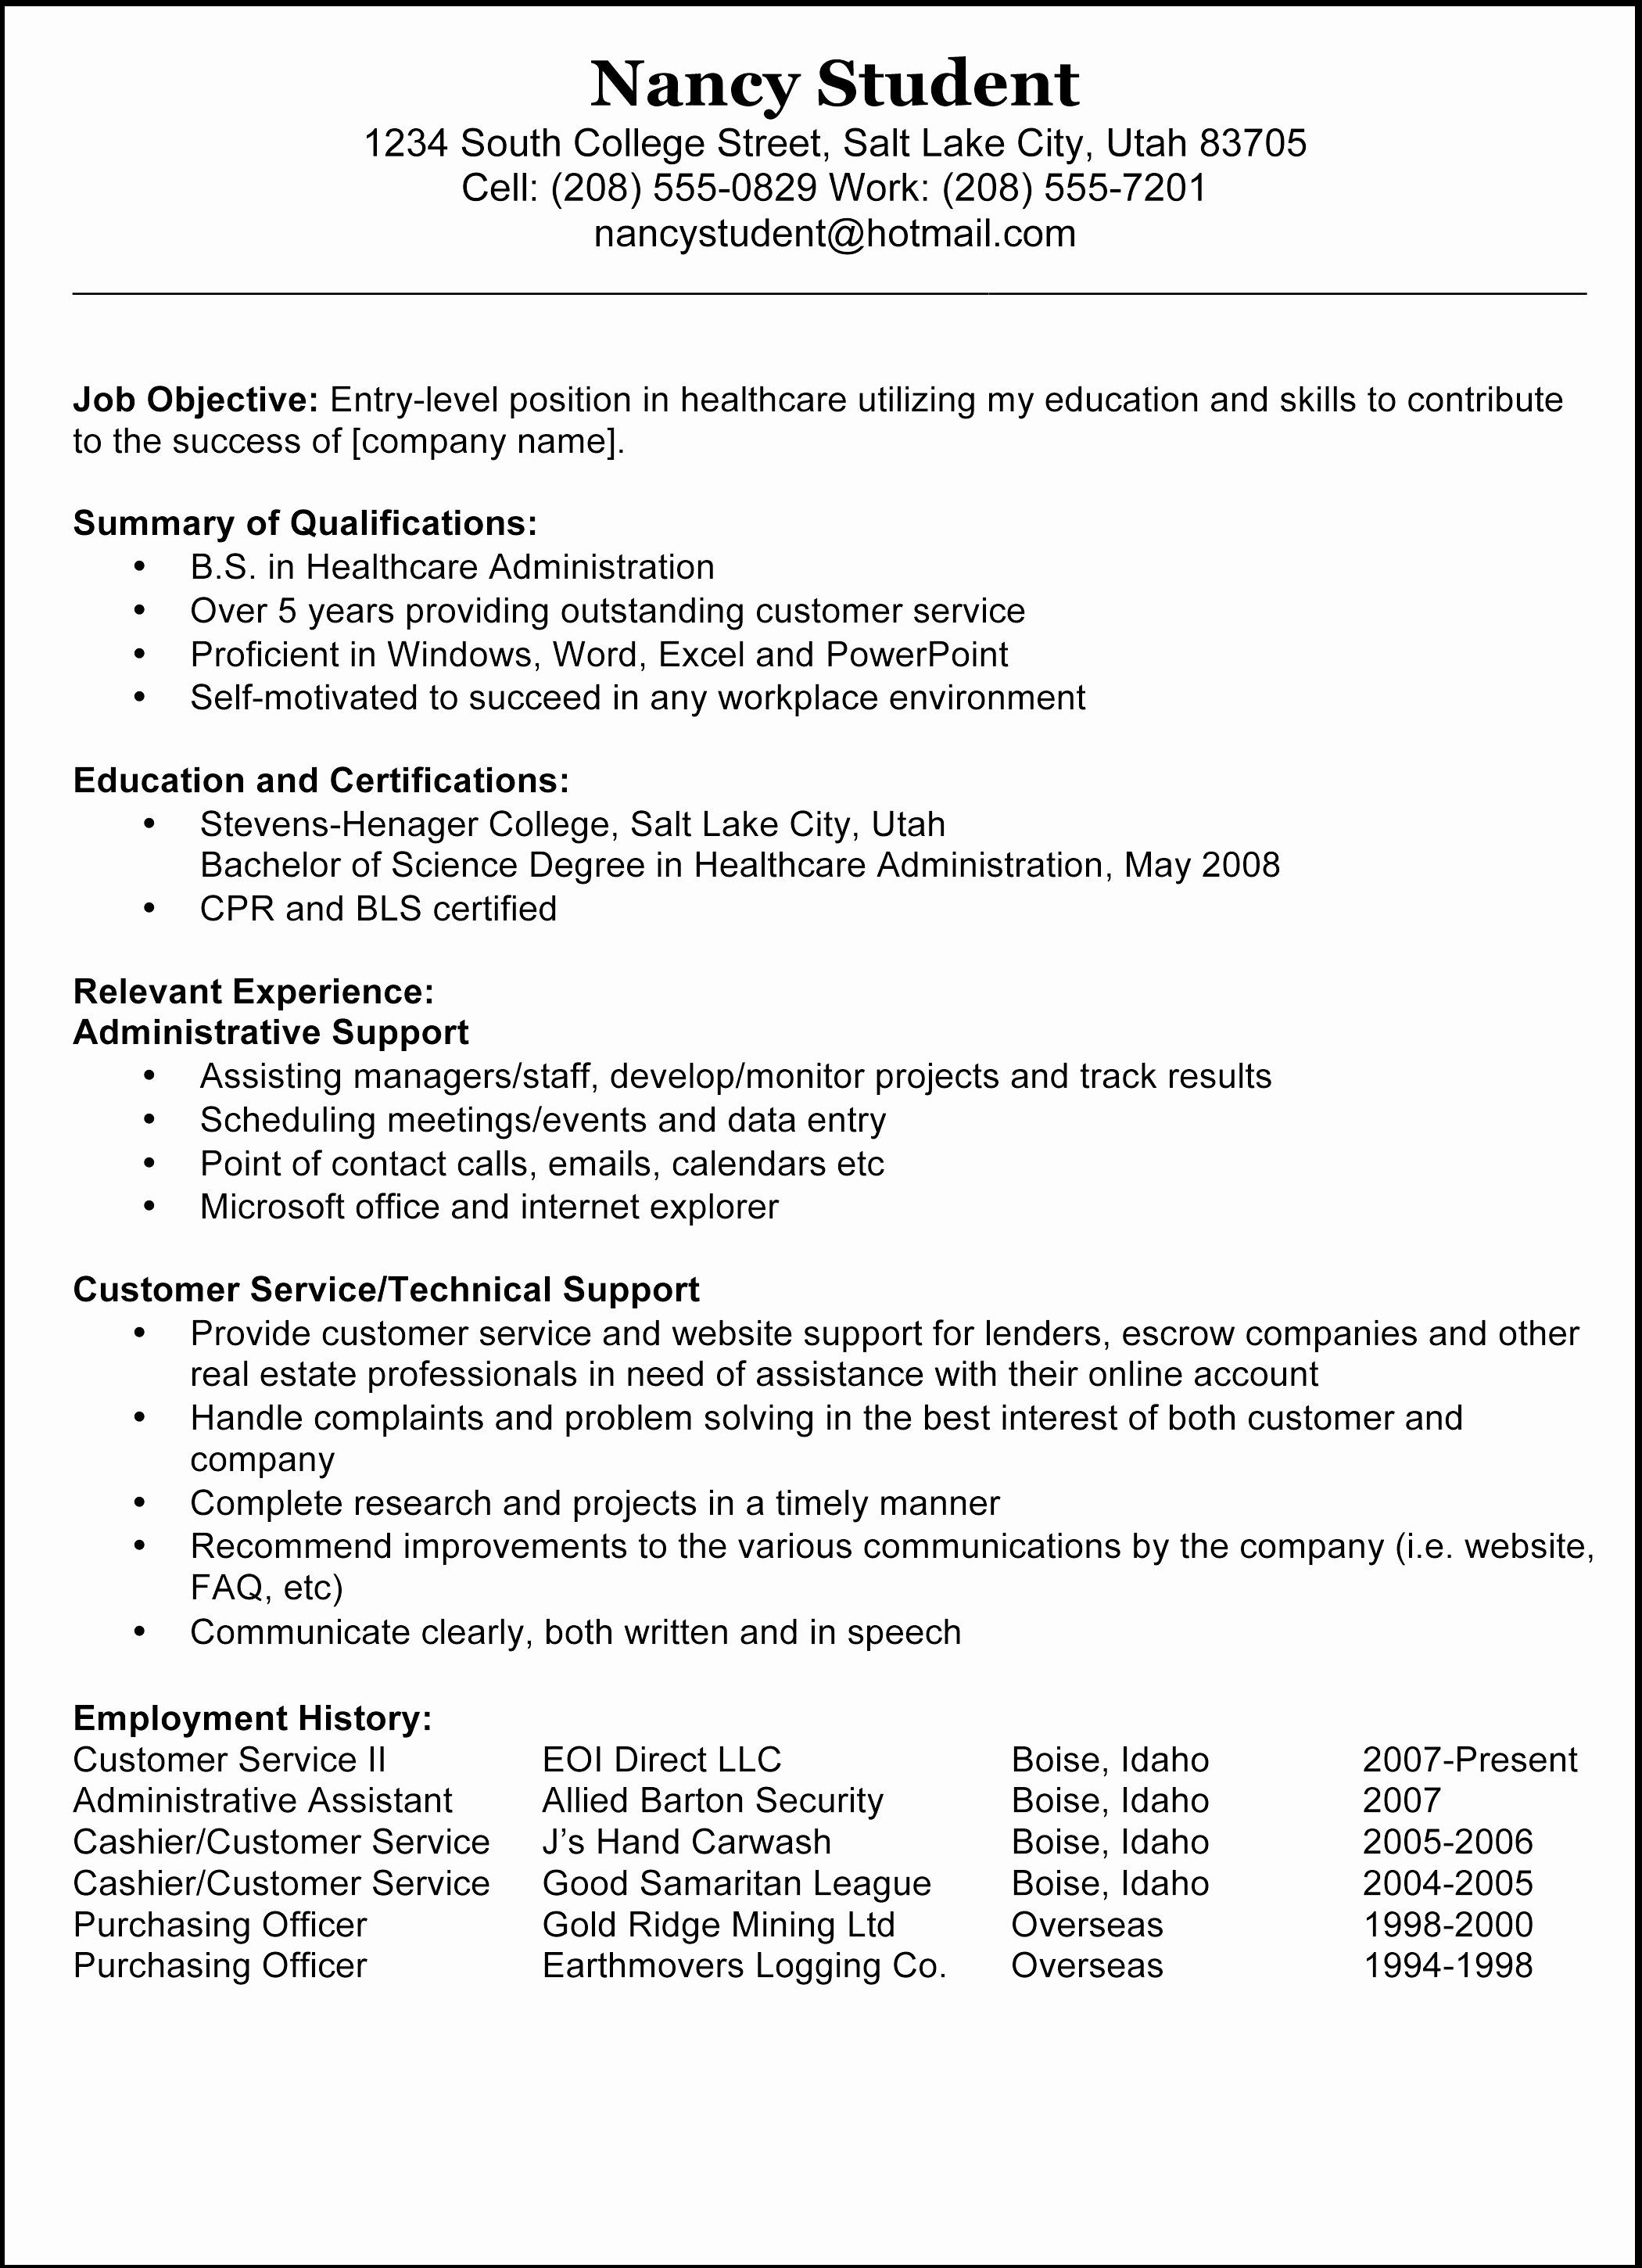 A Resume Summary Is A Brief List In Just A Few Sentences In The